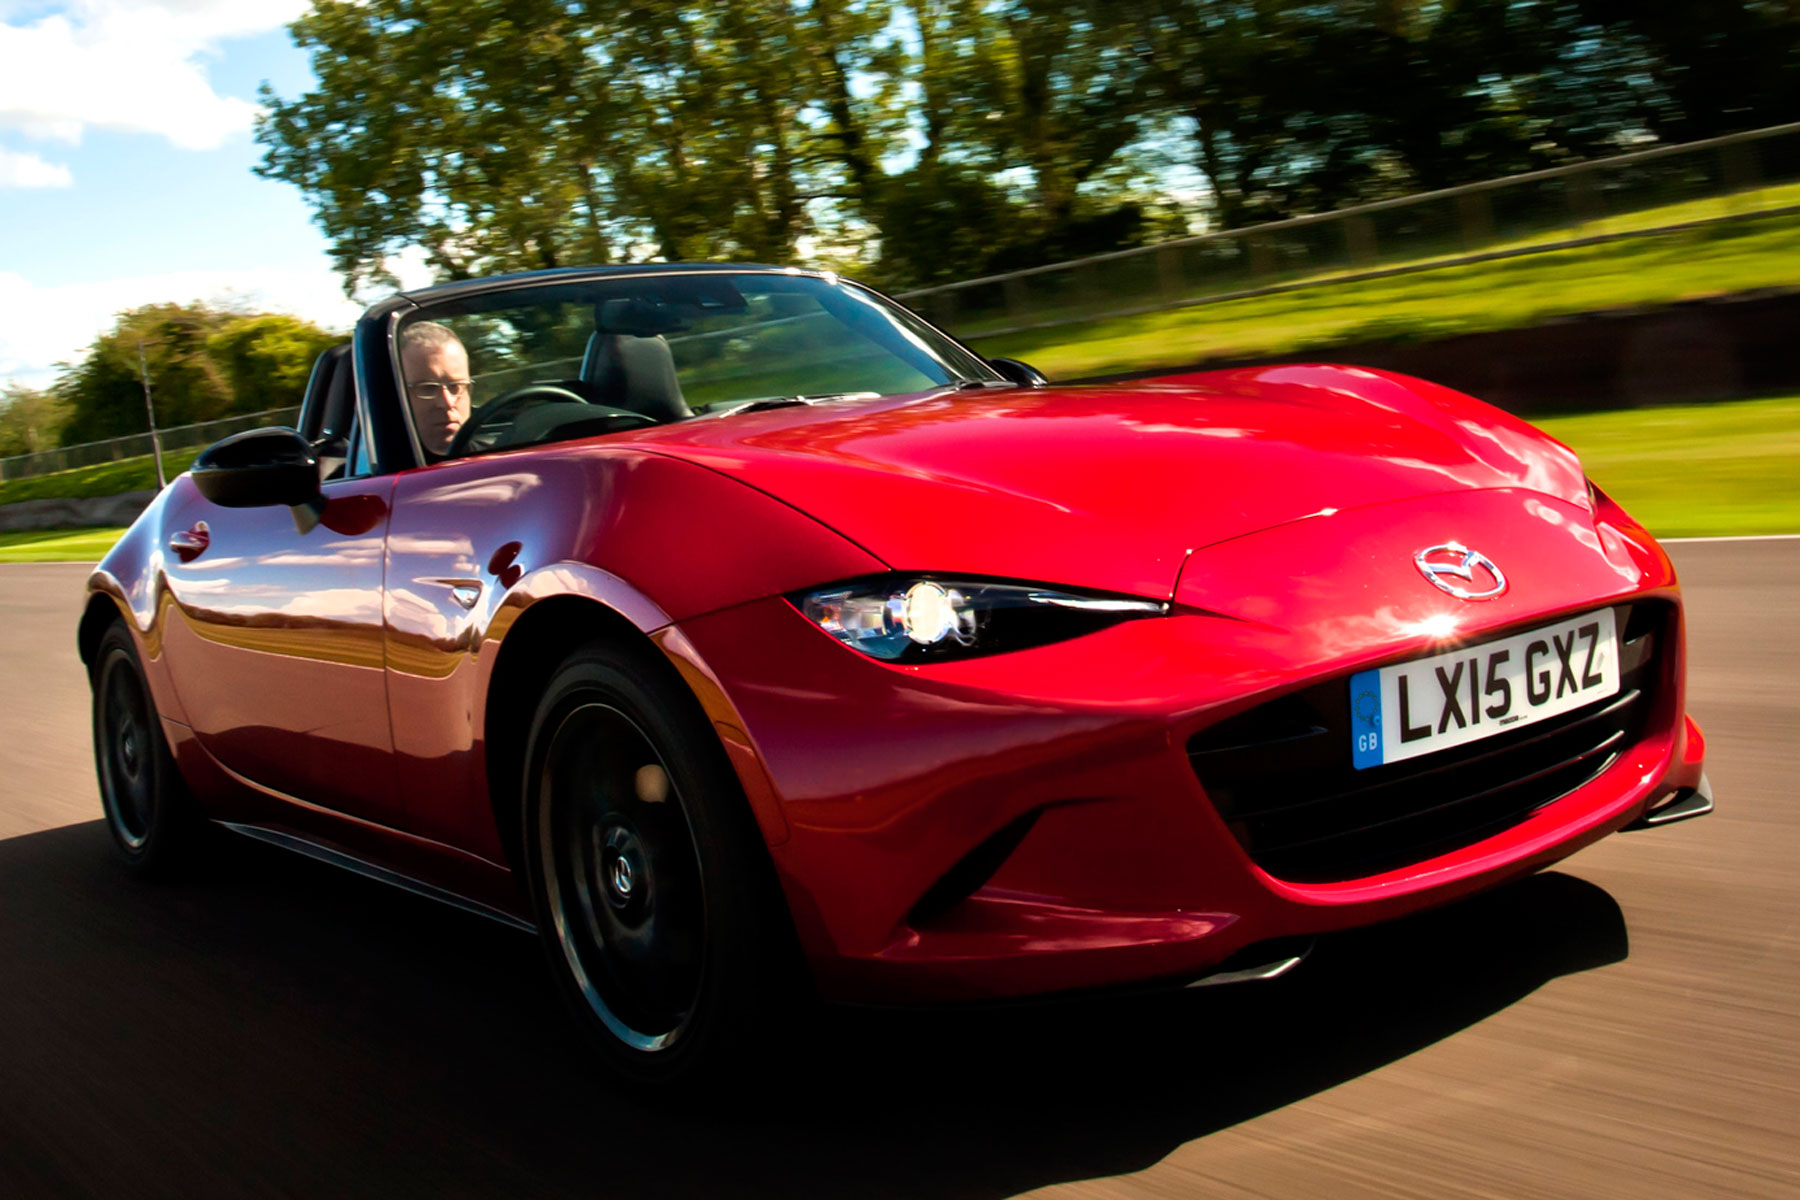 2015 Mazda MX-5: running costs